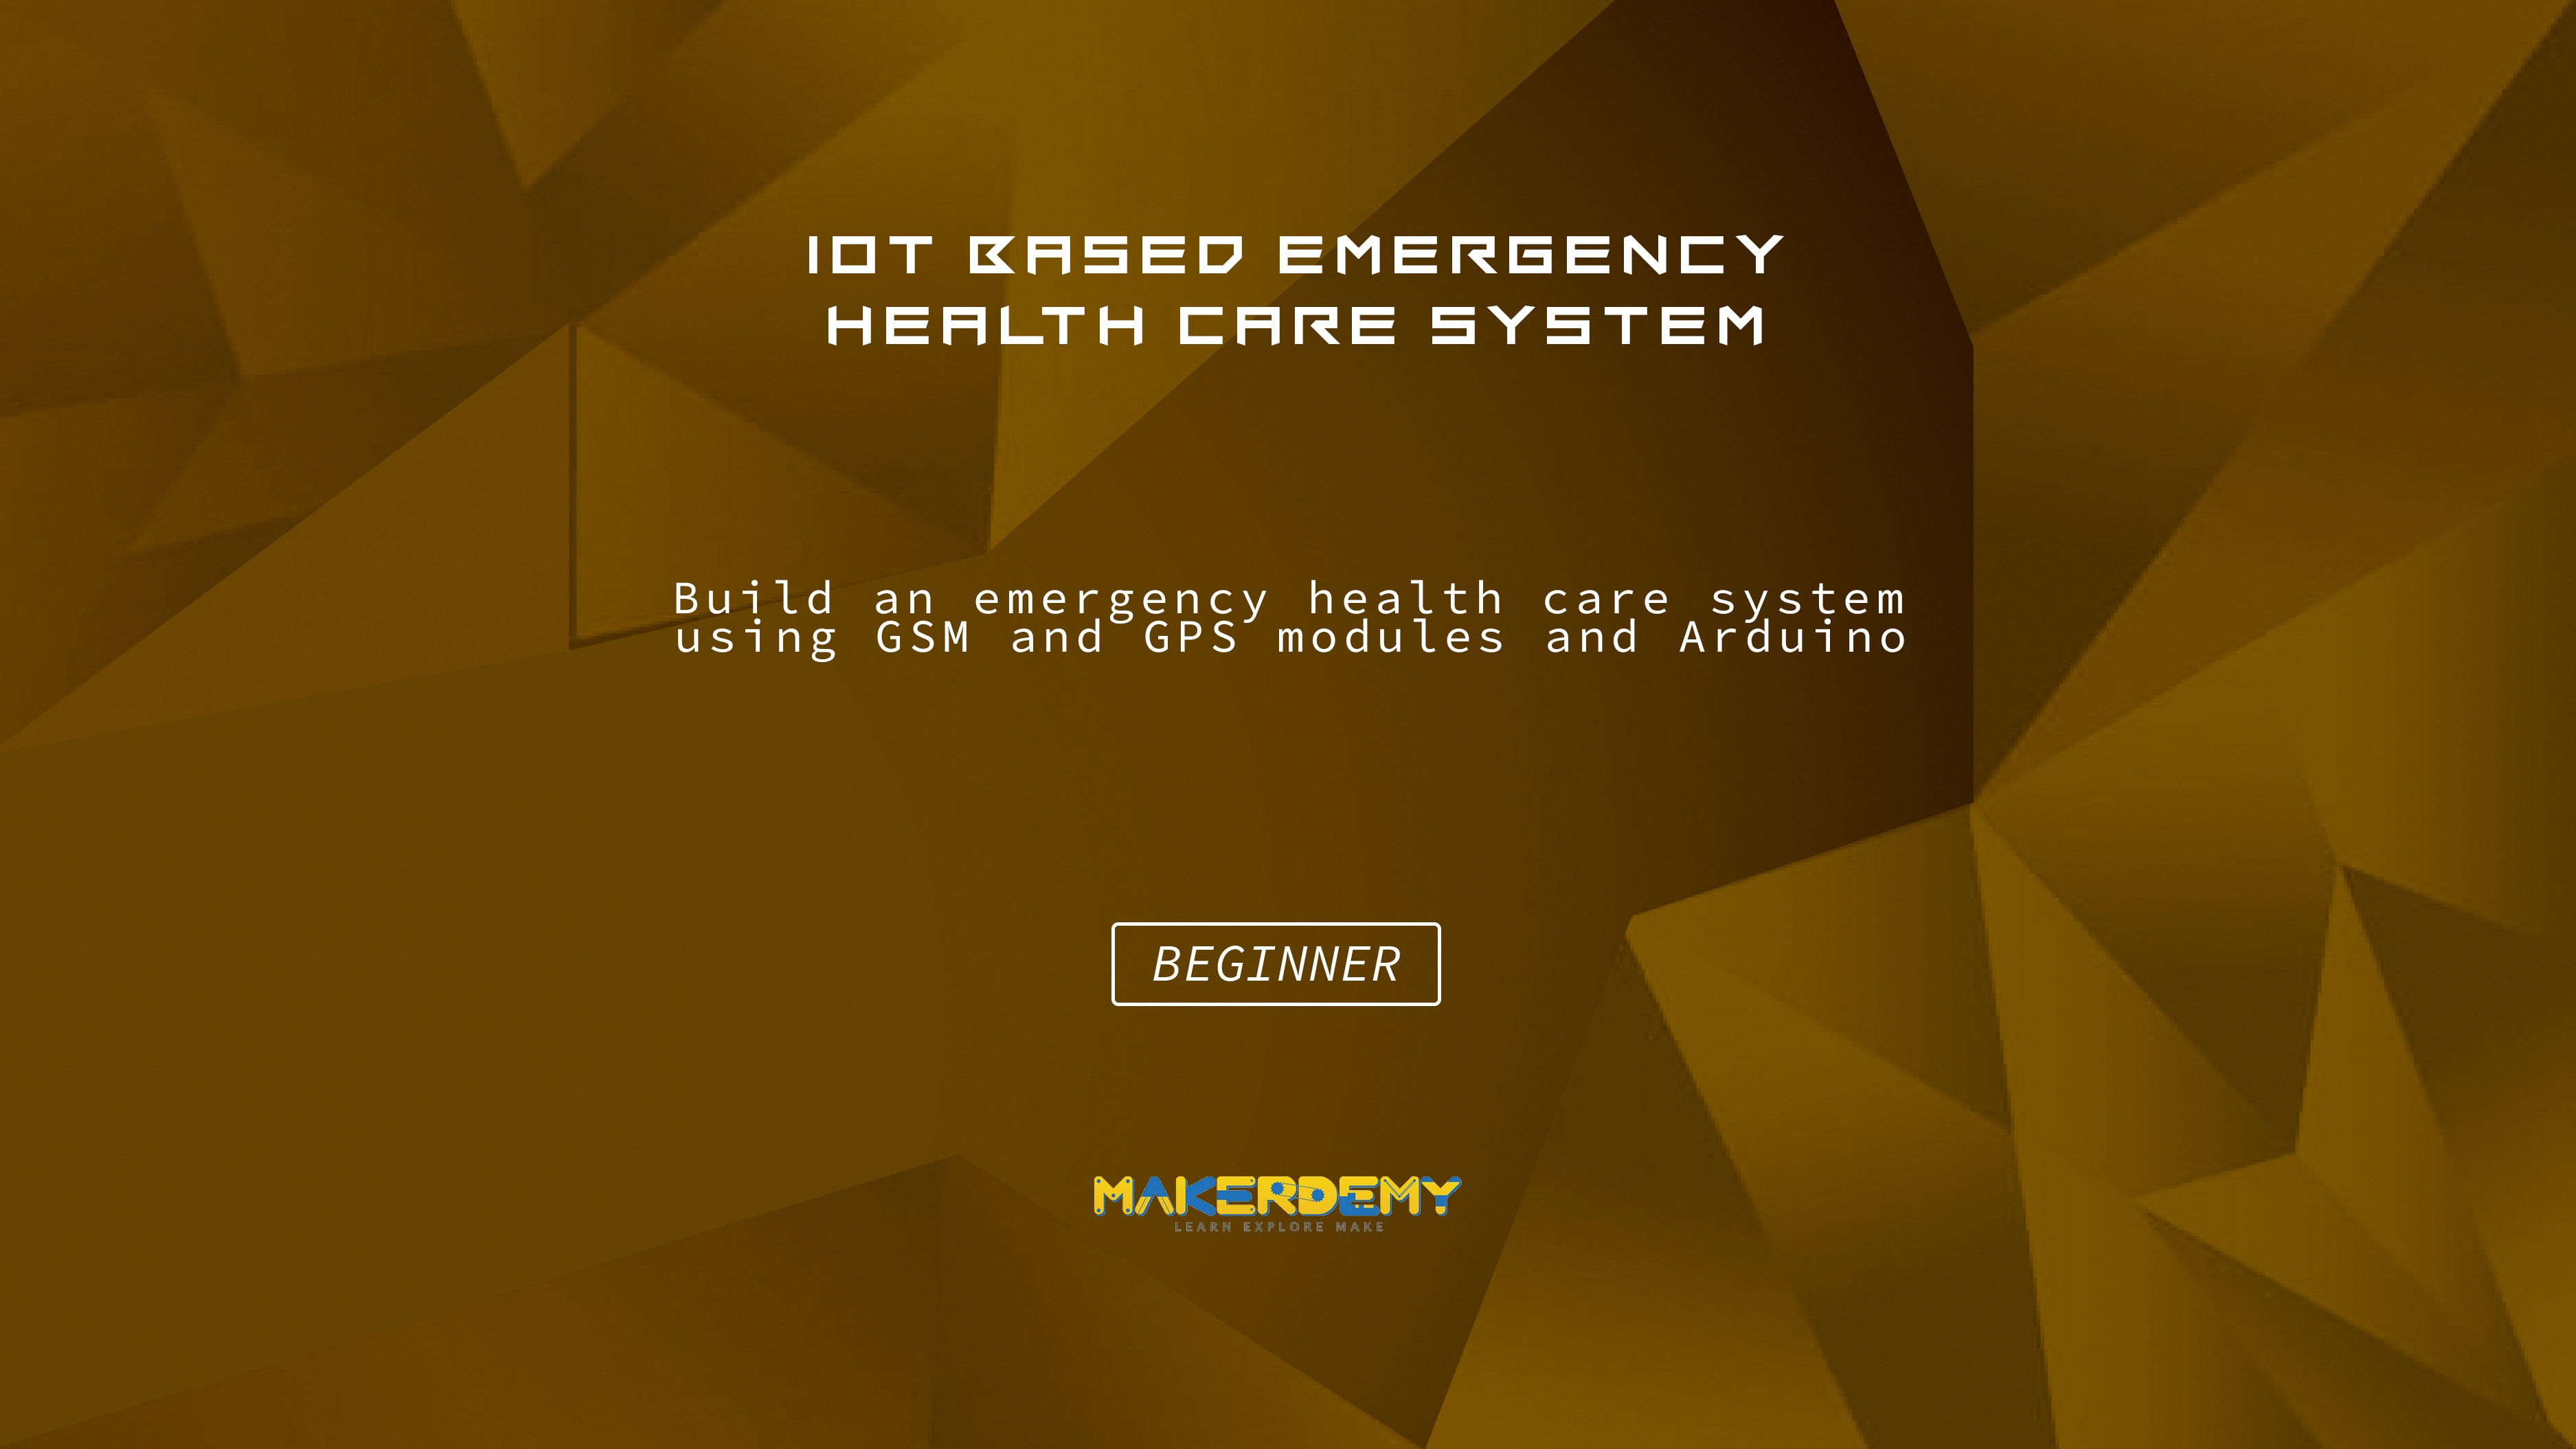 IoT based Emergency Health Care System